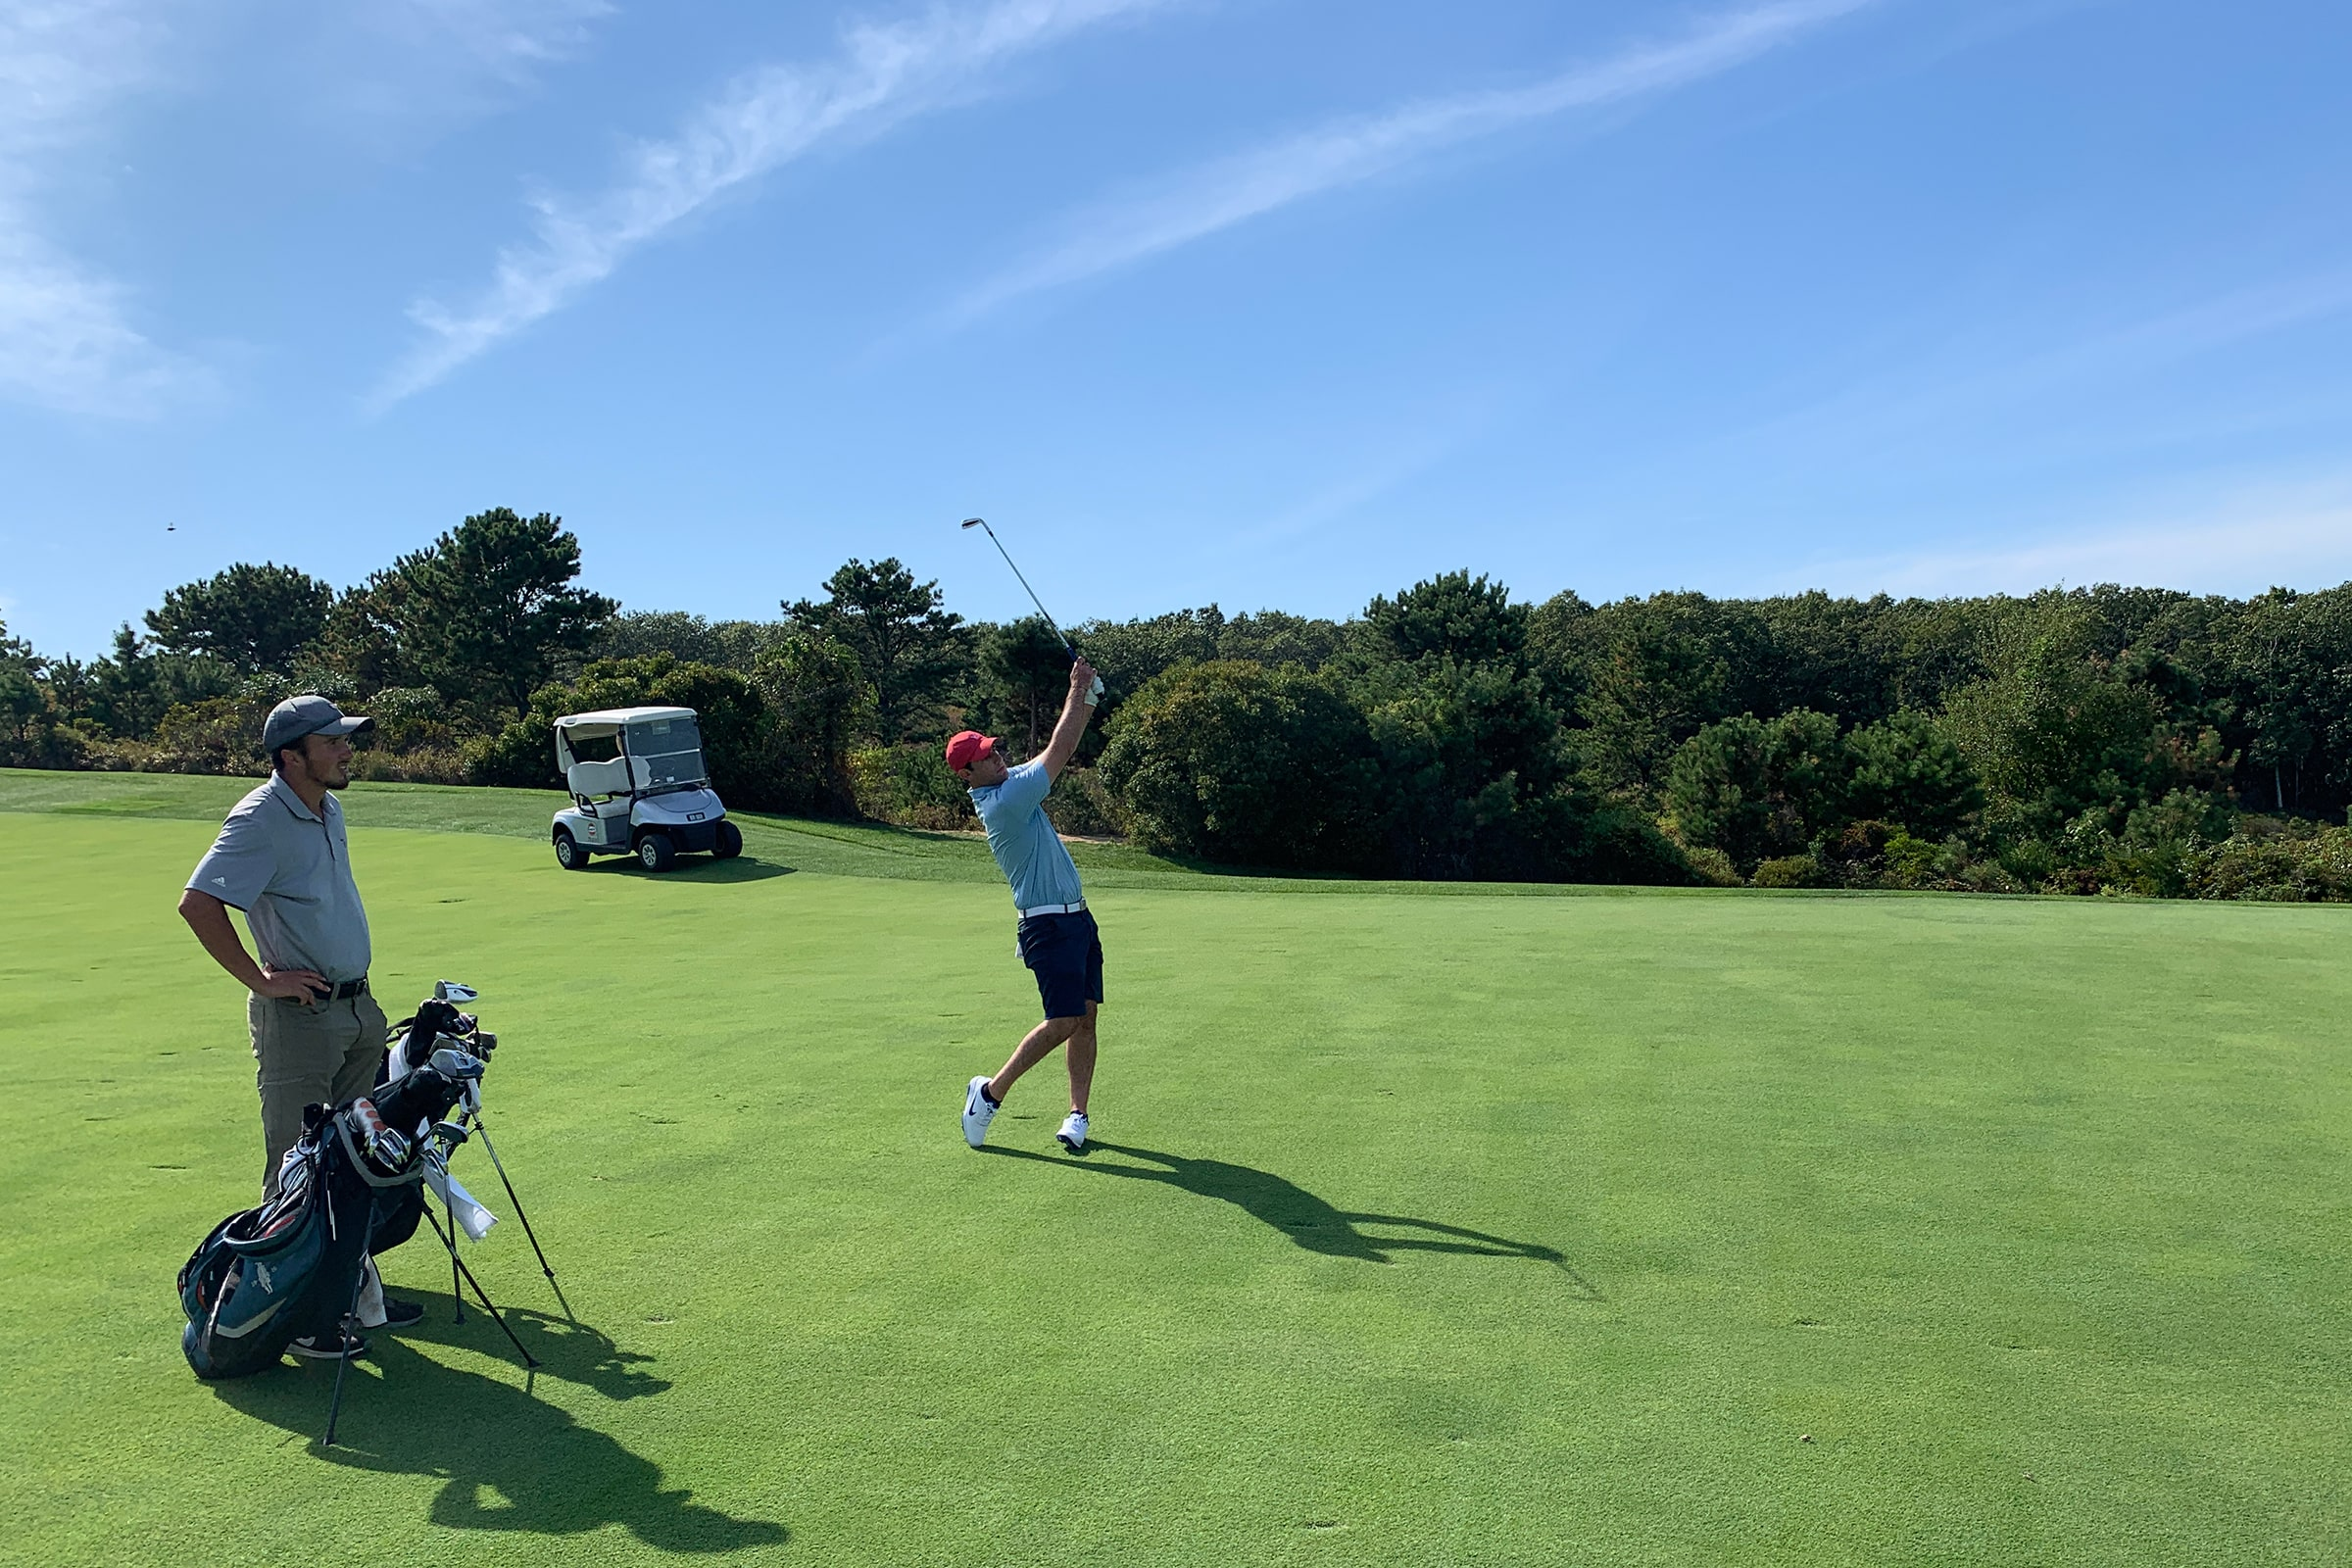 2019 Friends of the Foundation Tournaments at The Bridge